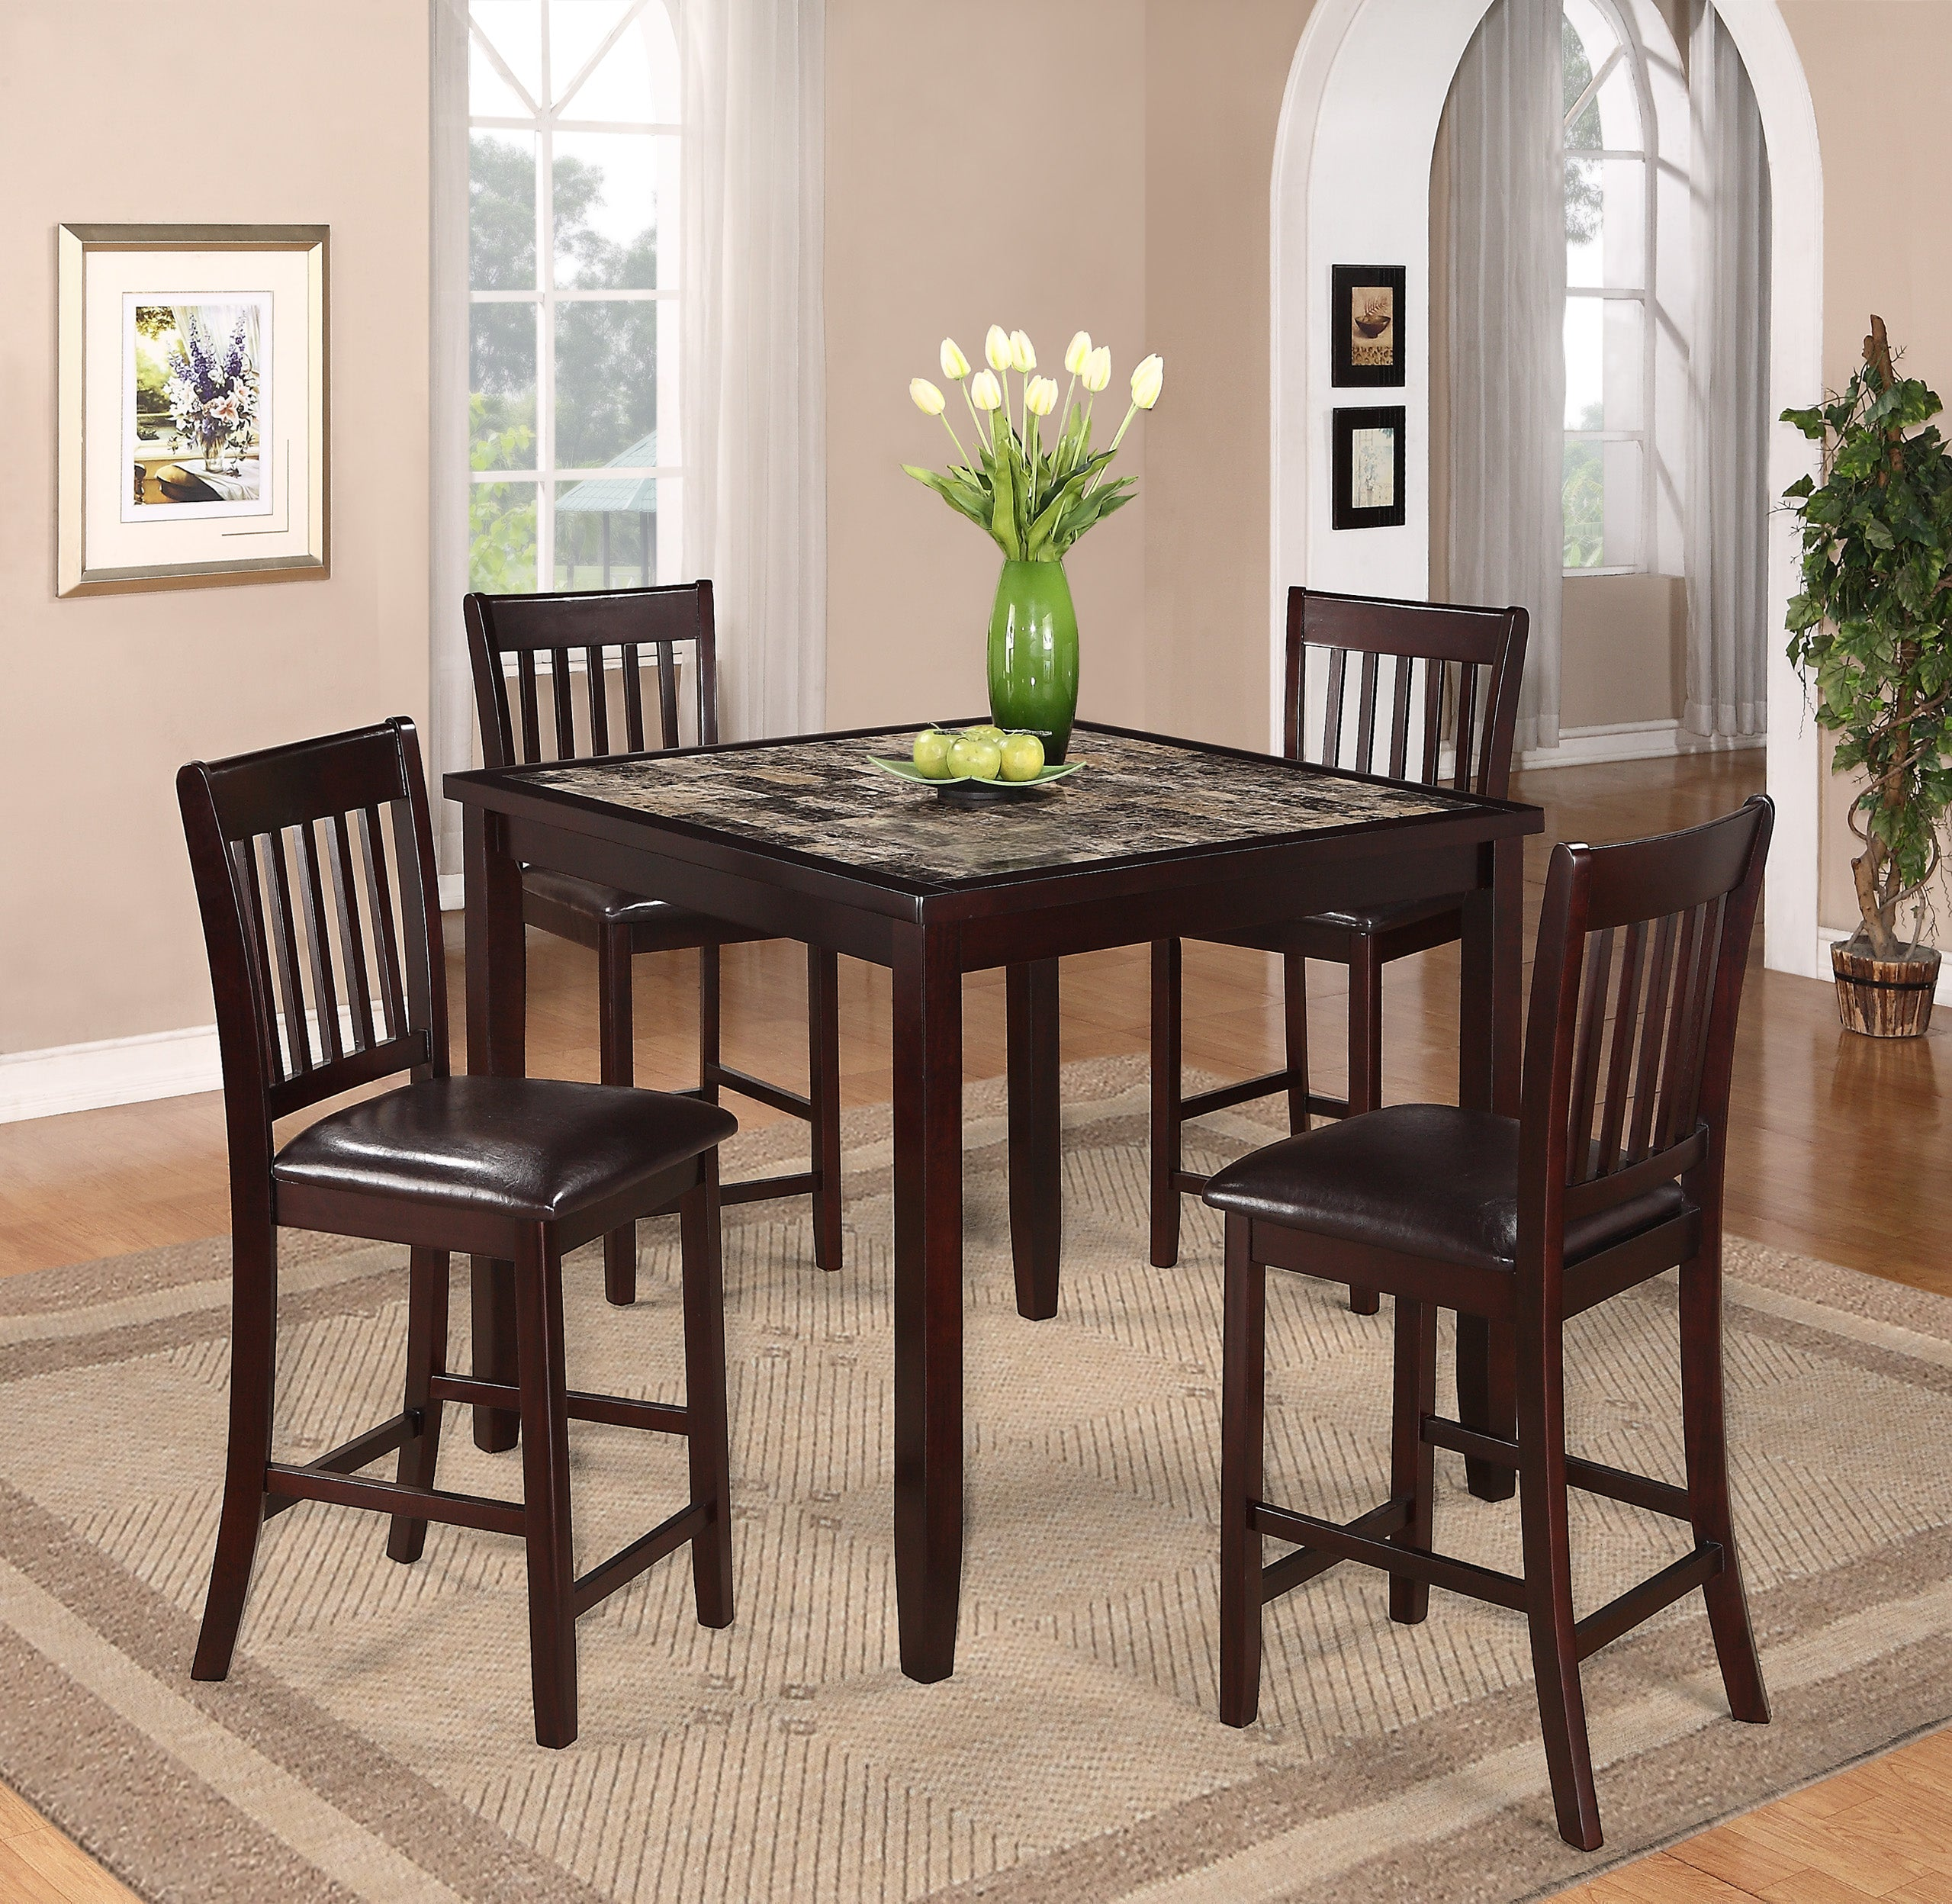 Checkerboard Marble Counter Height Dining Set